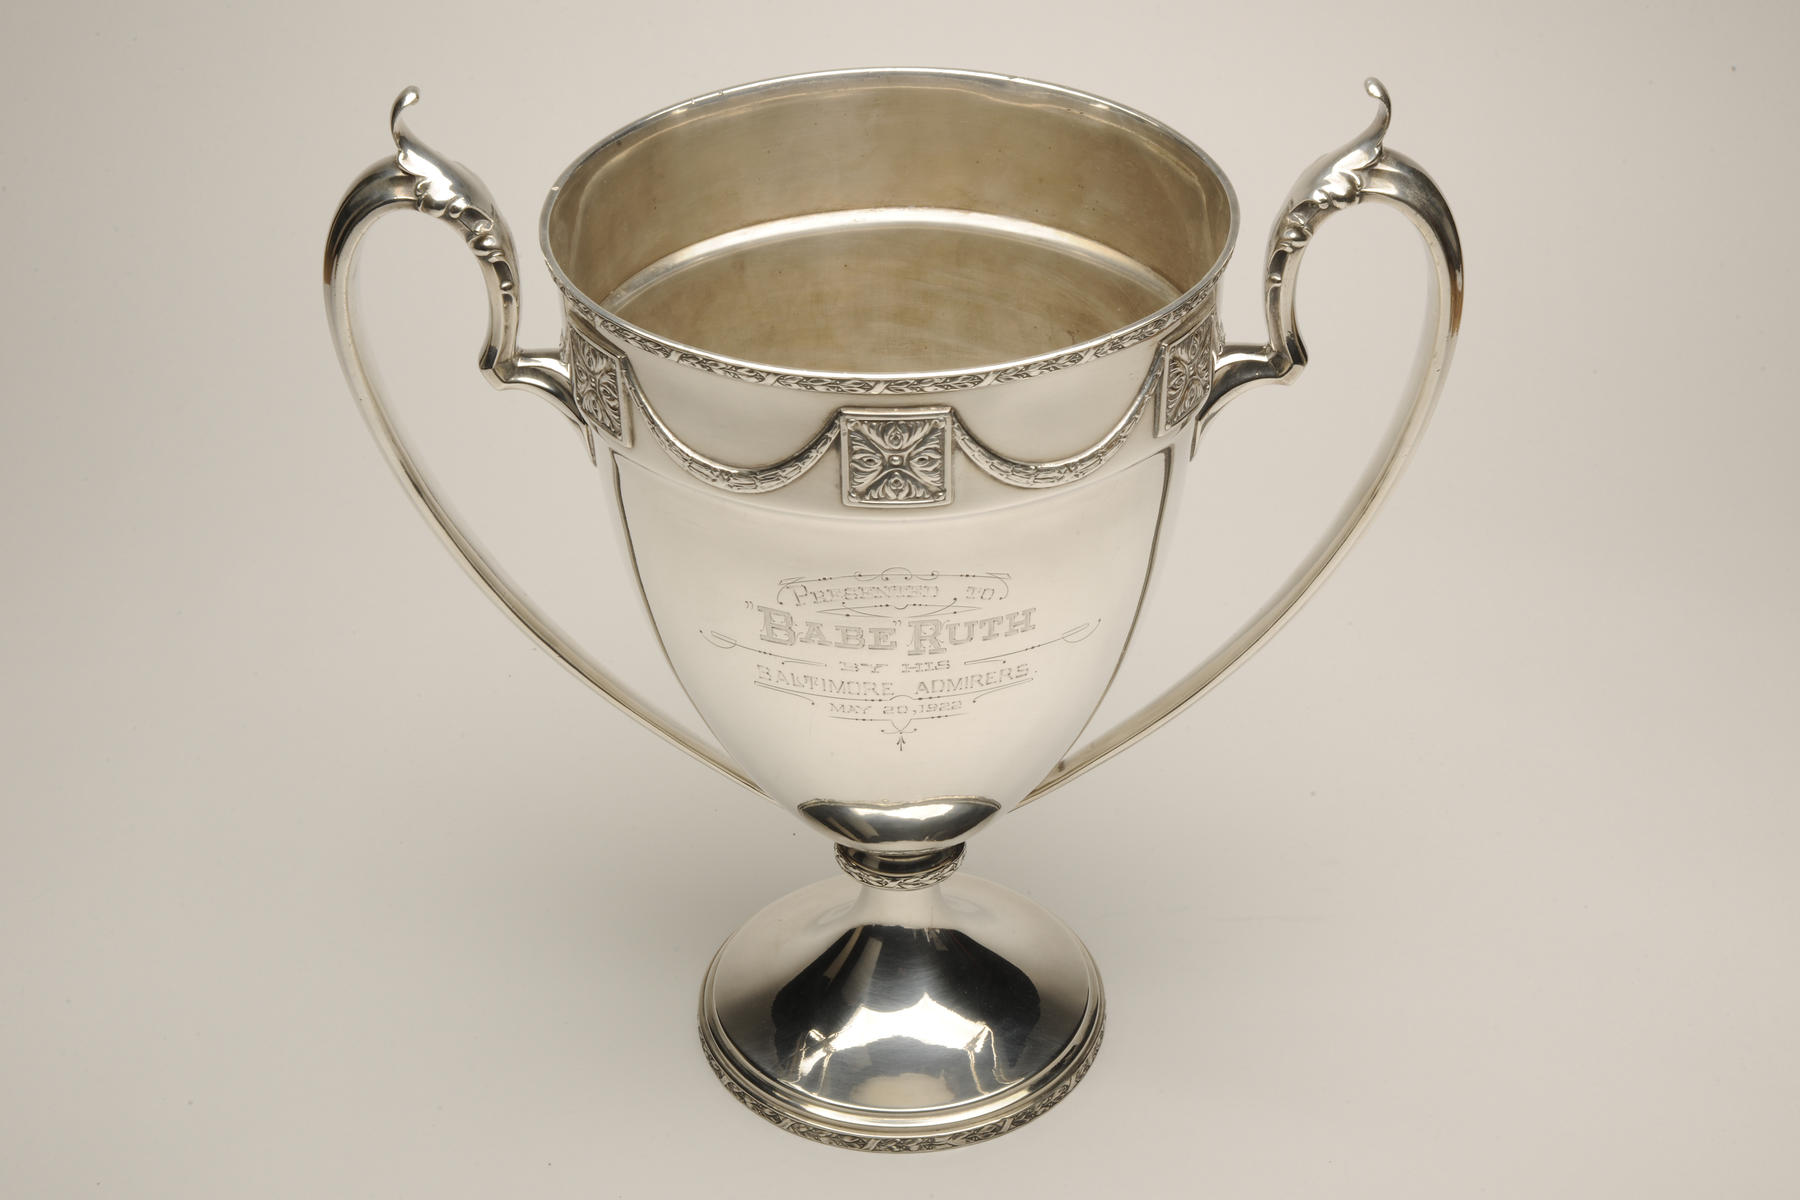 "Trophy presented to Babe Ruth by his ""Baltimore admirers"" on May 20, 1922,when he was allowed back to the Yankees after being suspended. B-64.49 (Milo Stewart, Jr. / National Baseball Hall of Fame)"